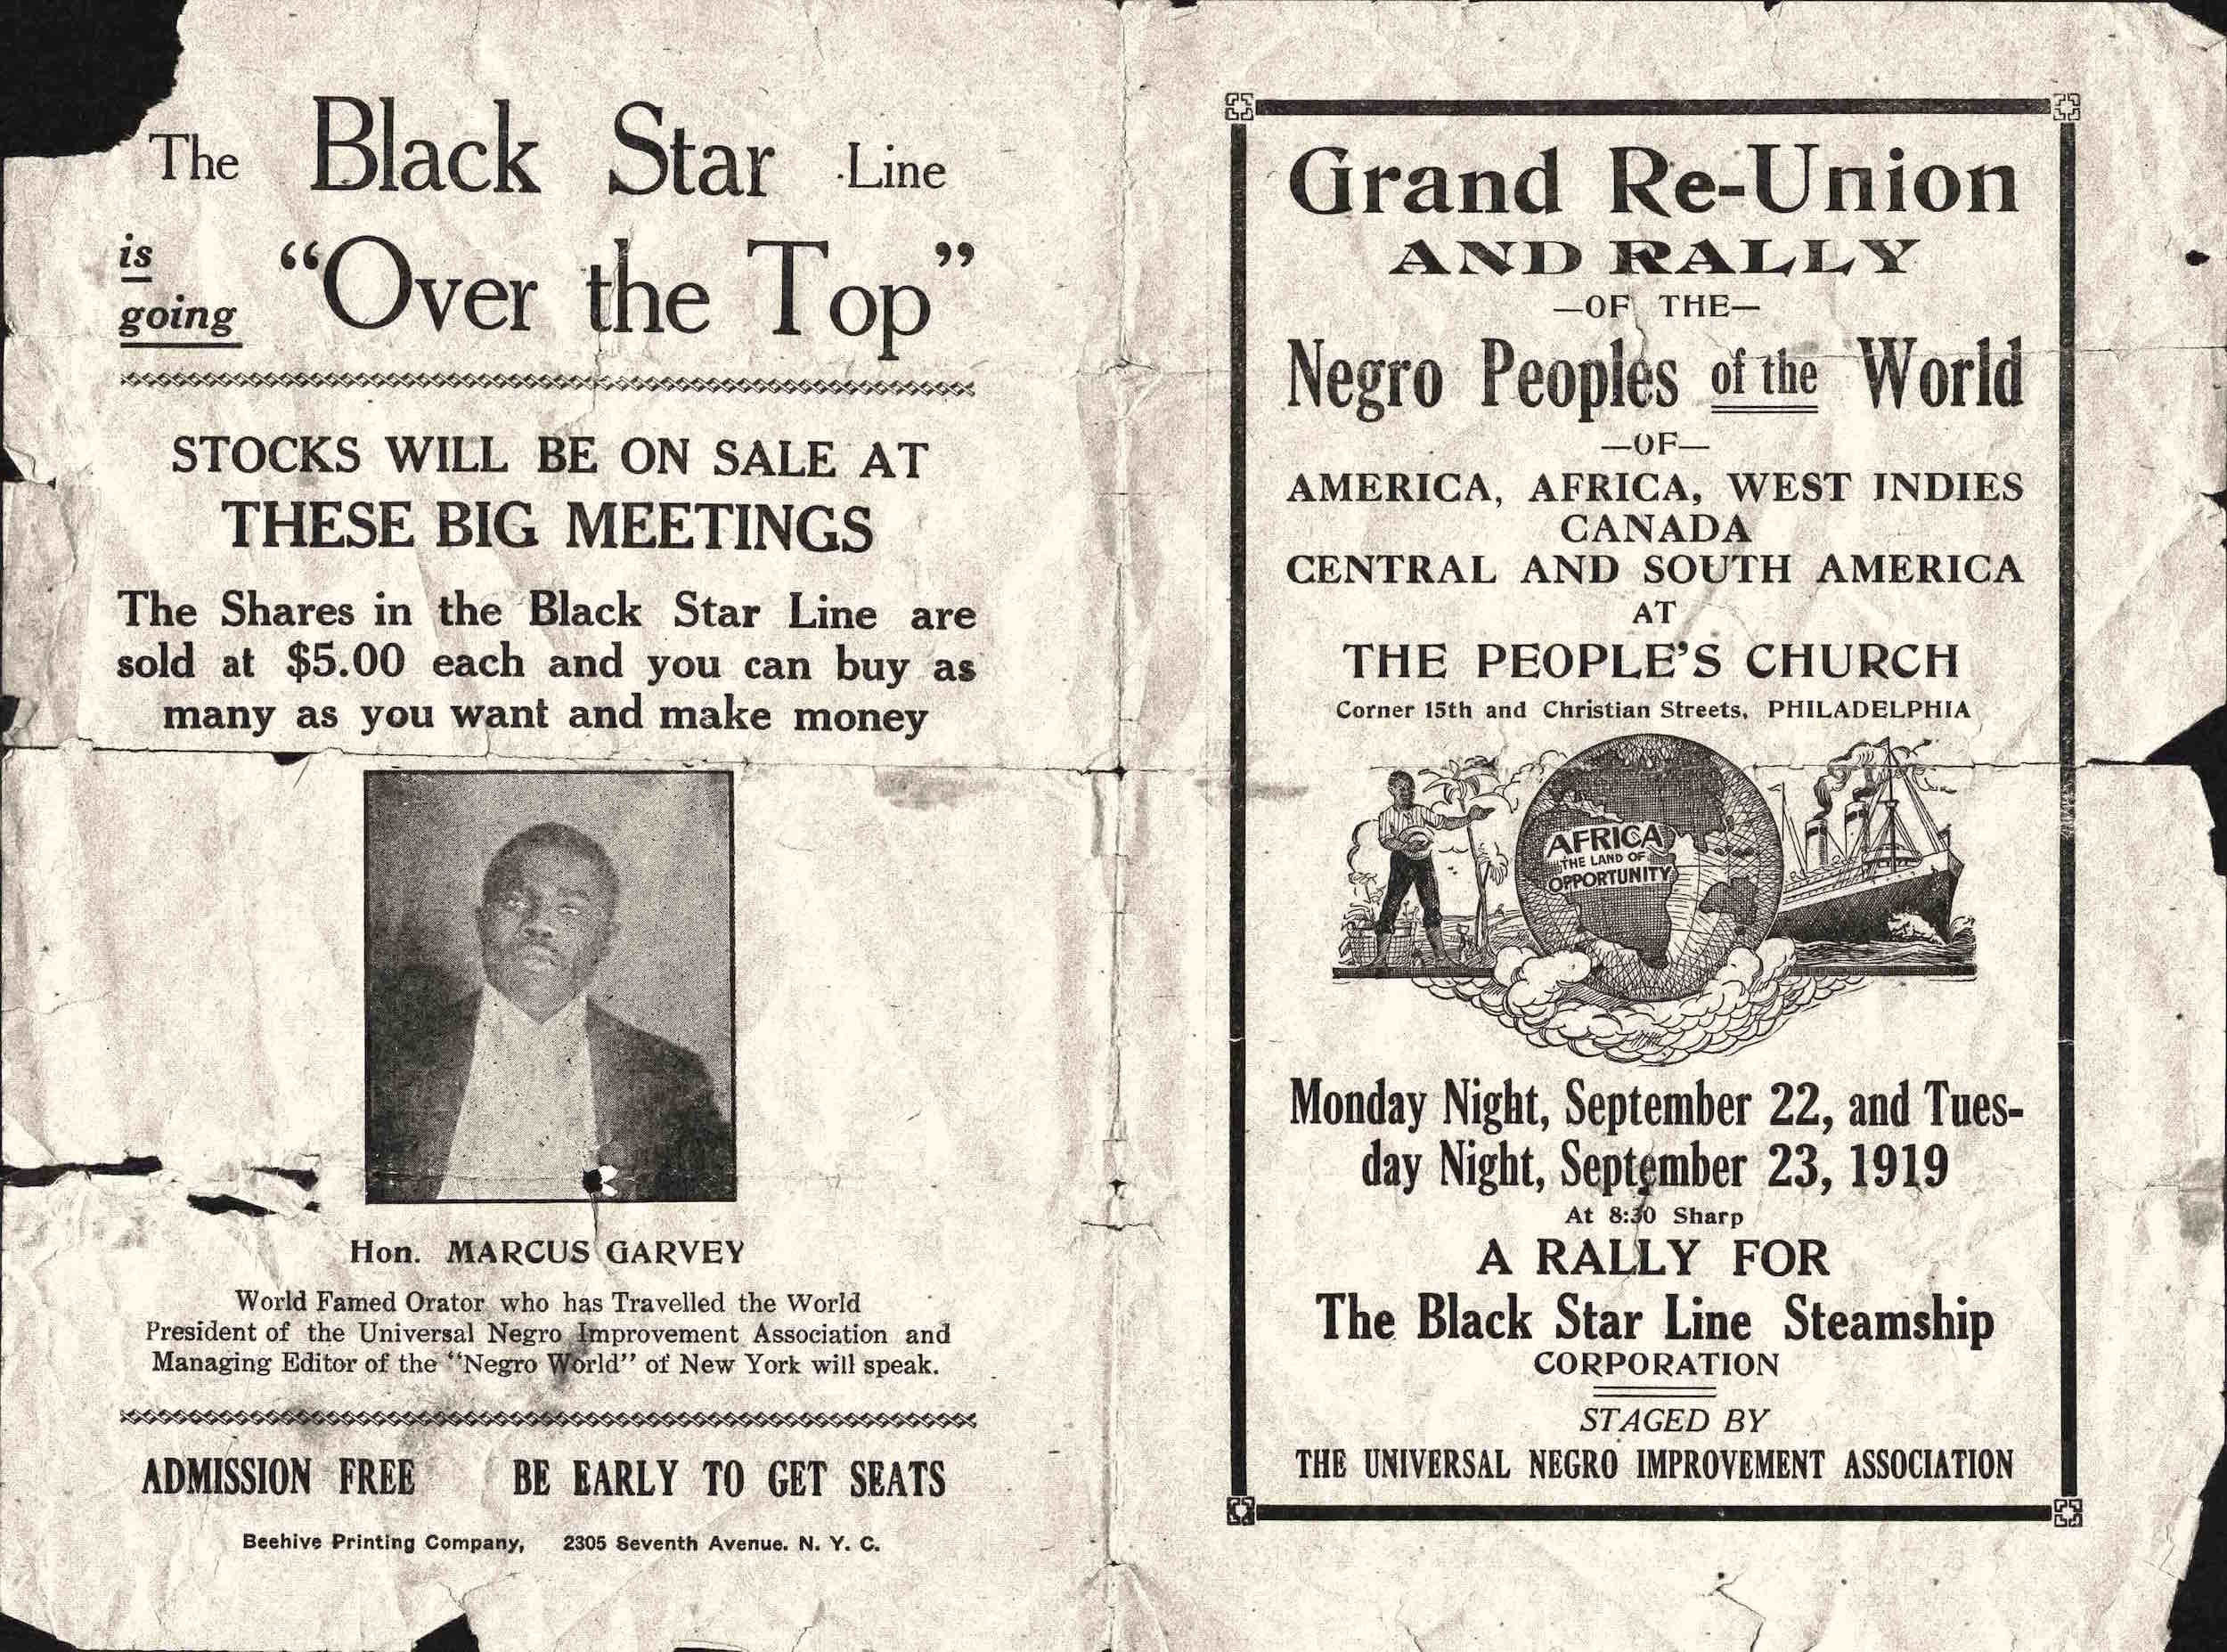 Flyer, U.N.I.A. Grand Reunion and Rally, Philadelphia, PA, 1919